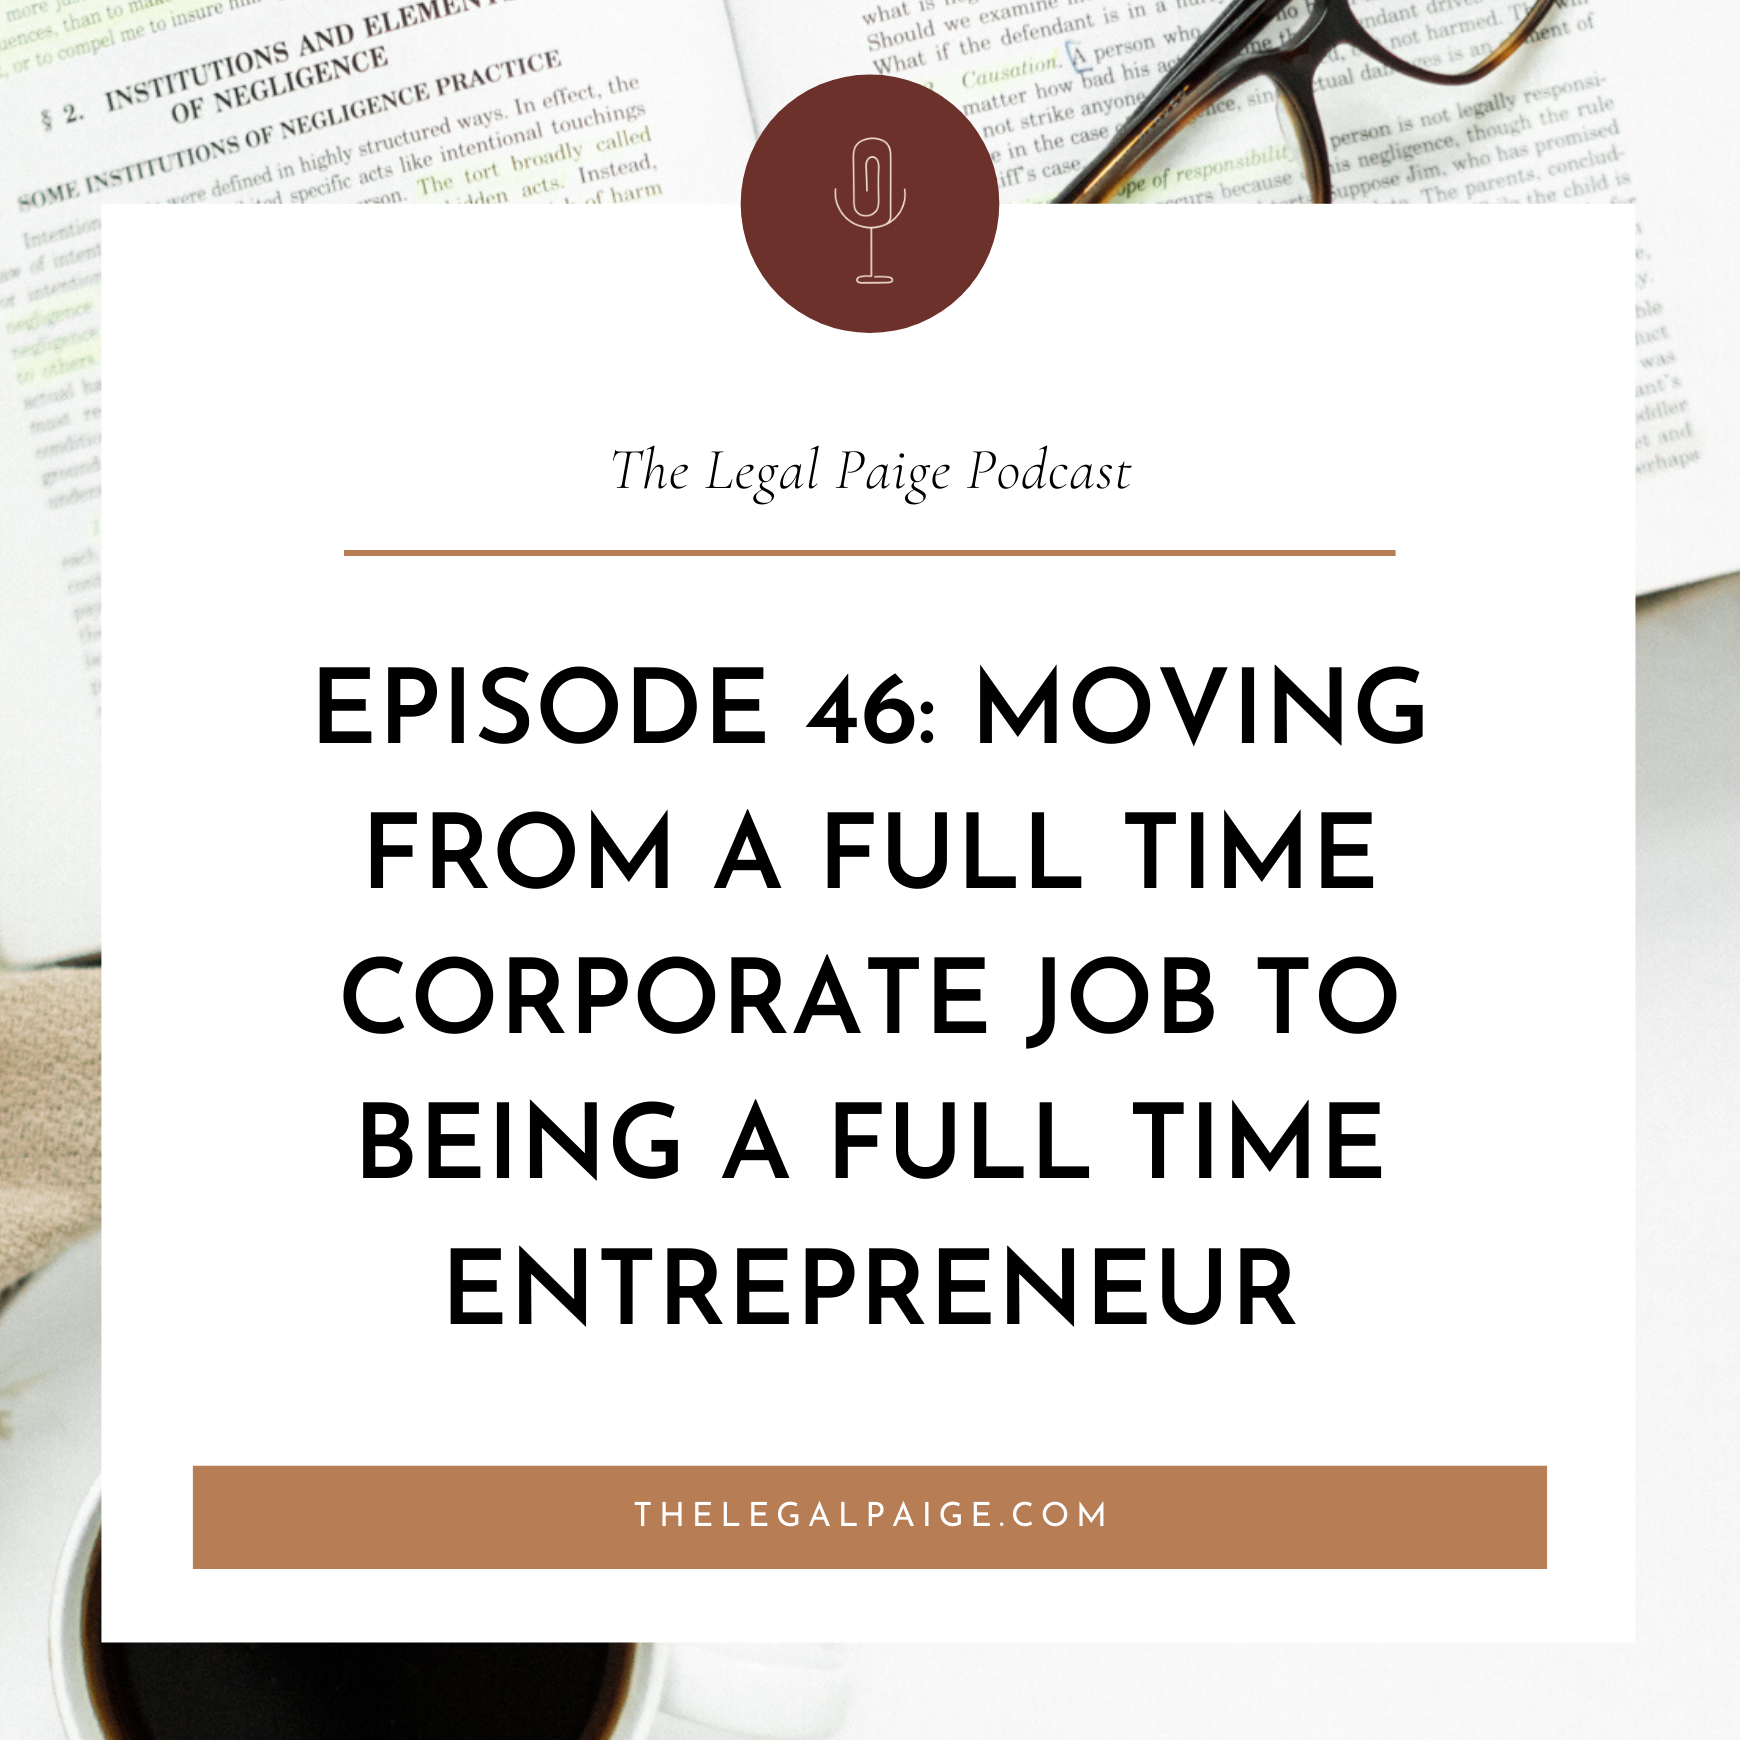 Episode 46: Moving from A Full Time Corporate job to Being A Full Time Entrepreneur with Jaine Kershner